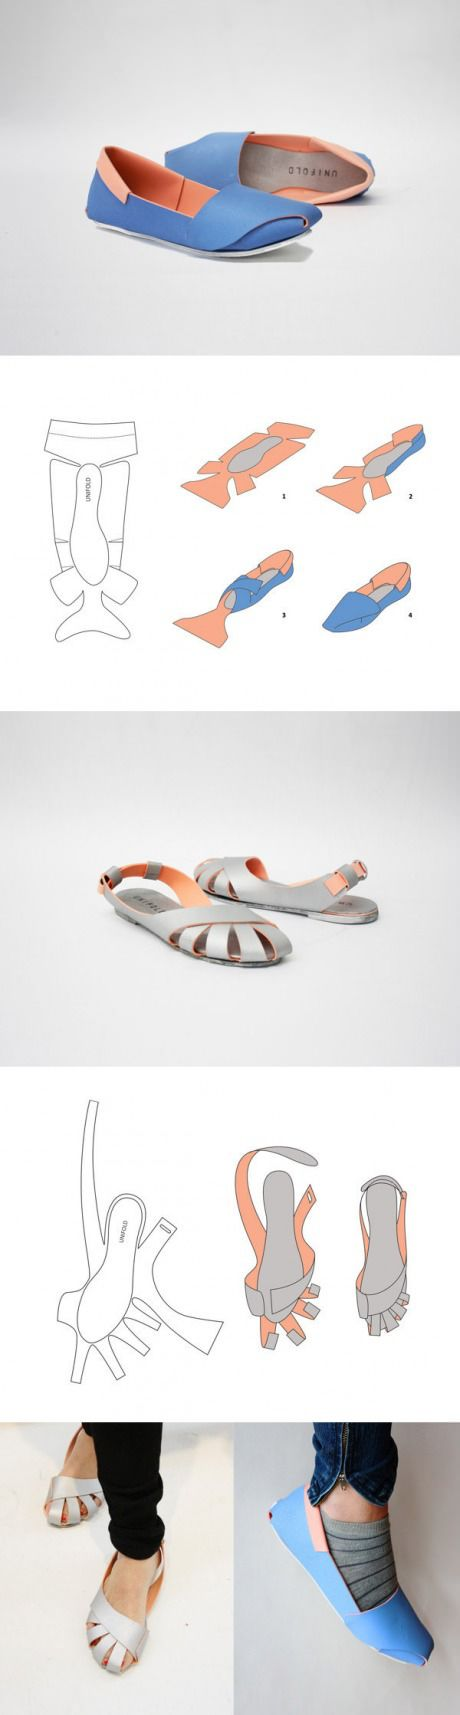 Shoes made from paper